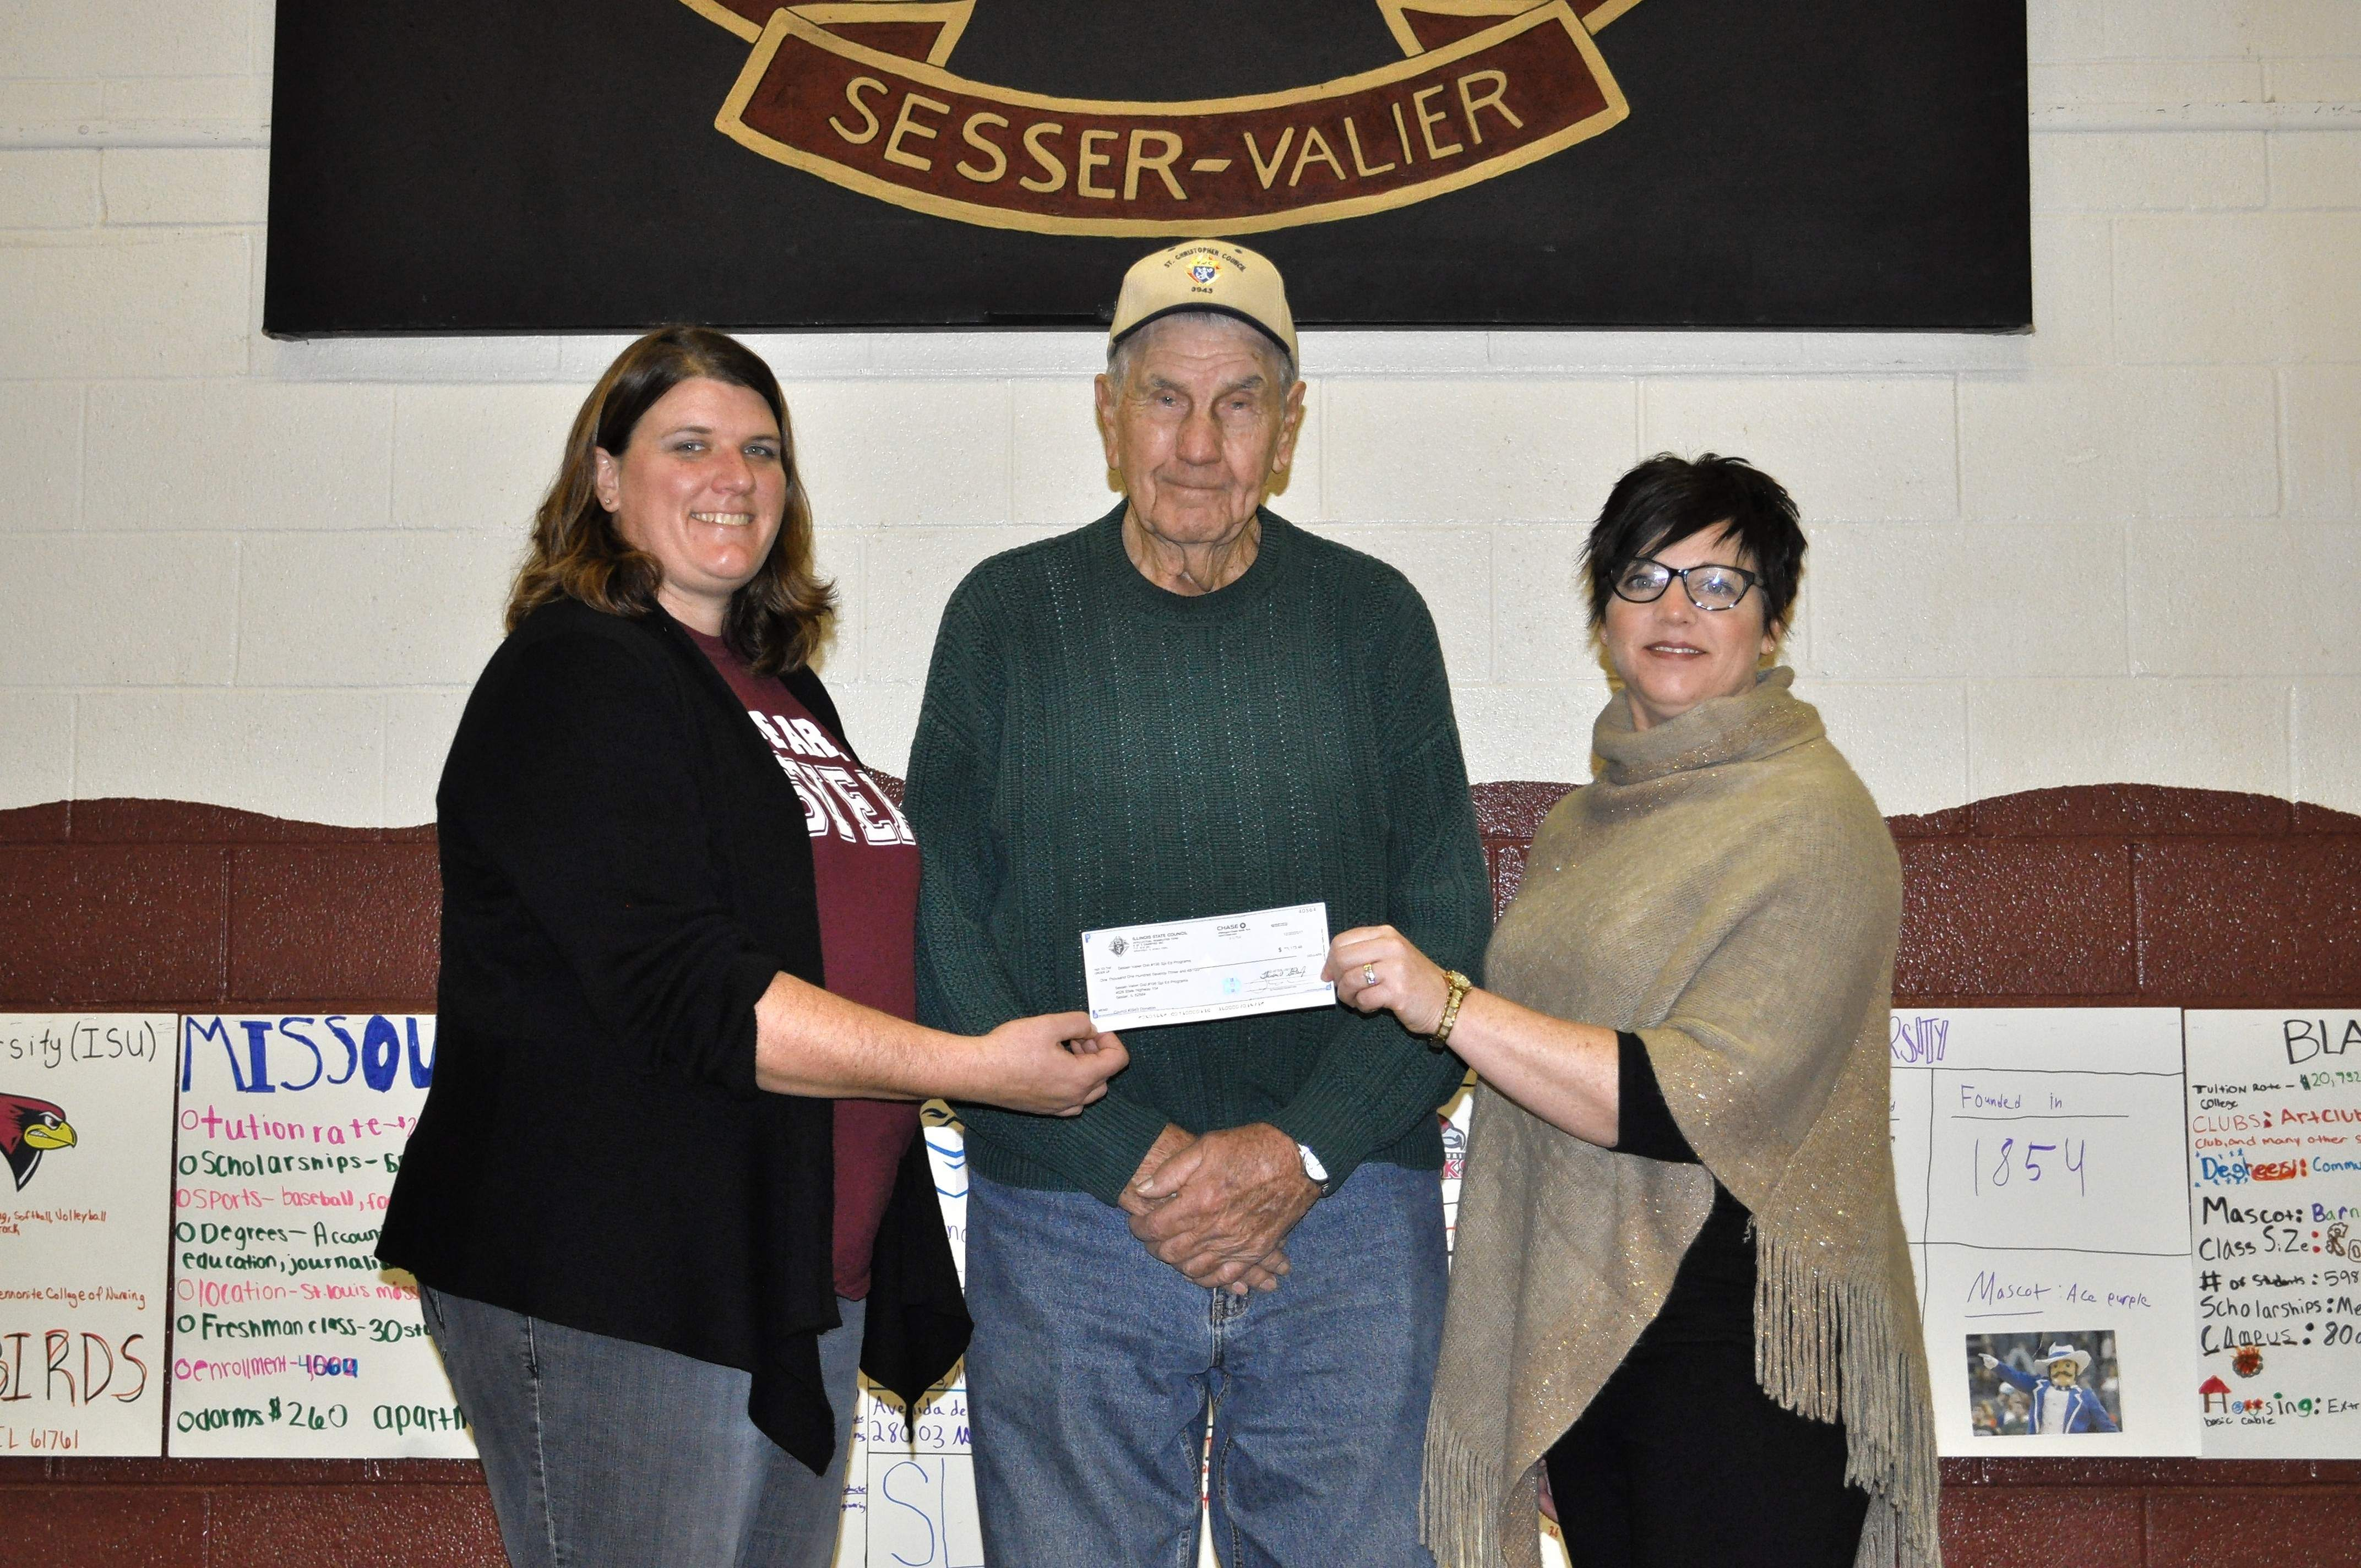 Junior high special education teacher Rachel Payne (left) and Sesser-Valier High School principal Natalie Page receive their Tootsie Roll check from Christopher KC member James 'Tooter' Lovelady of Sesser.